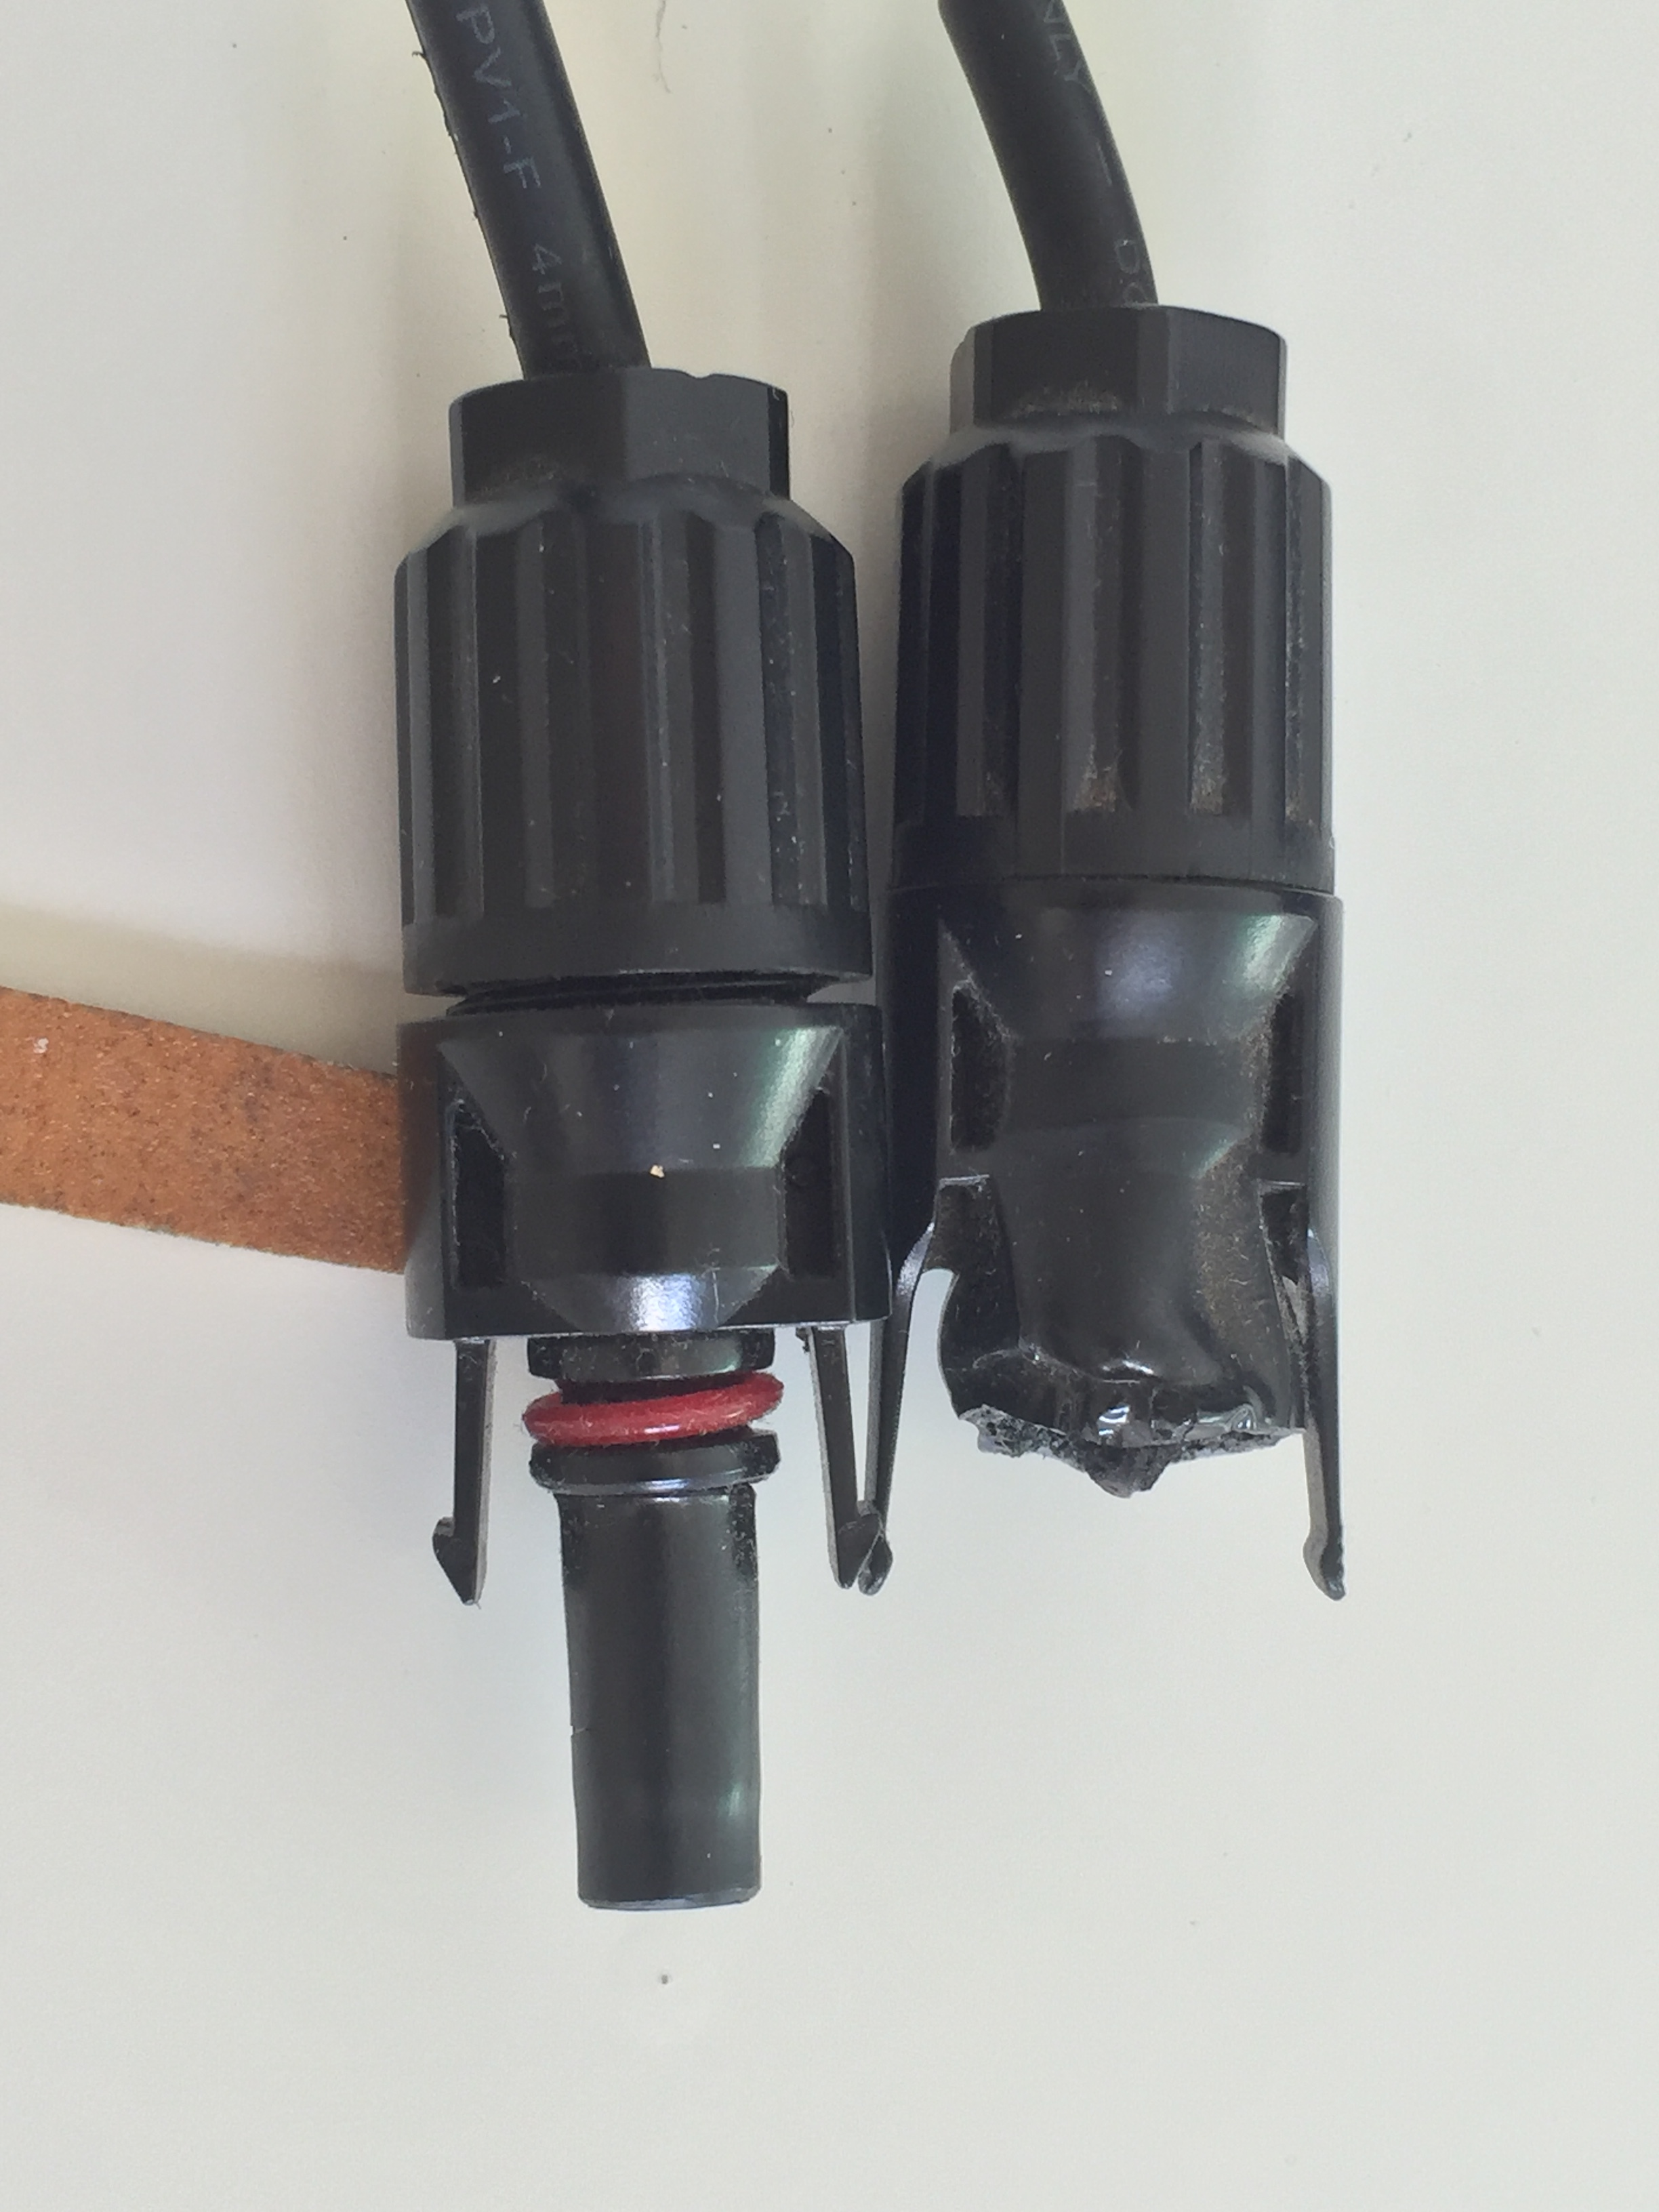 •  On the right: melted, failed connector prevented power going into the batteries